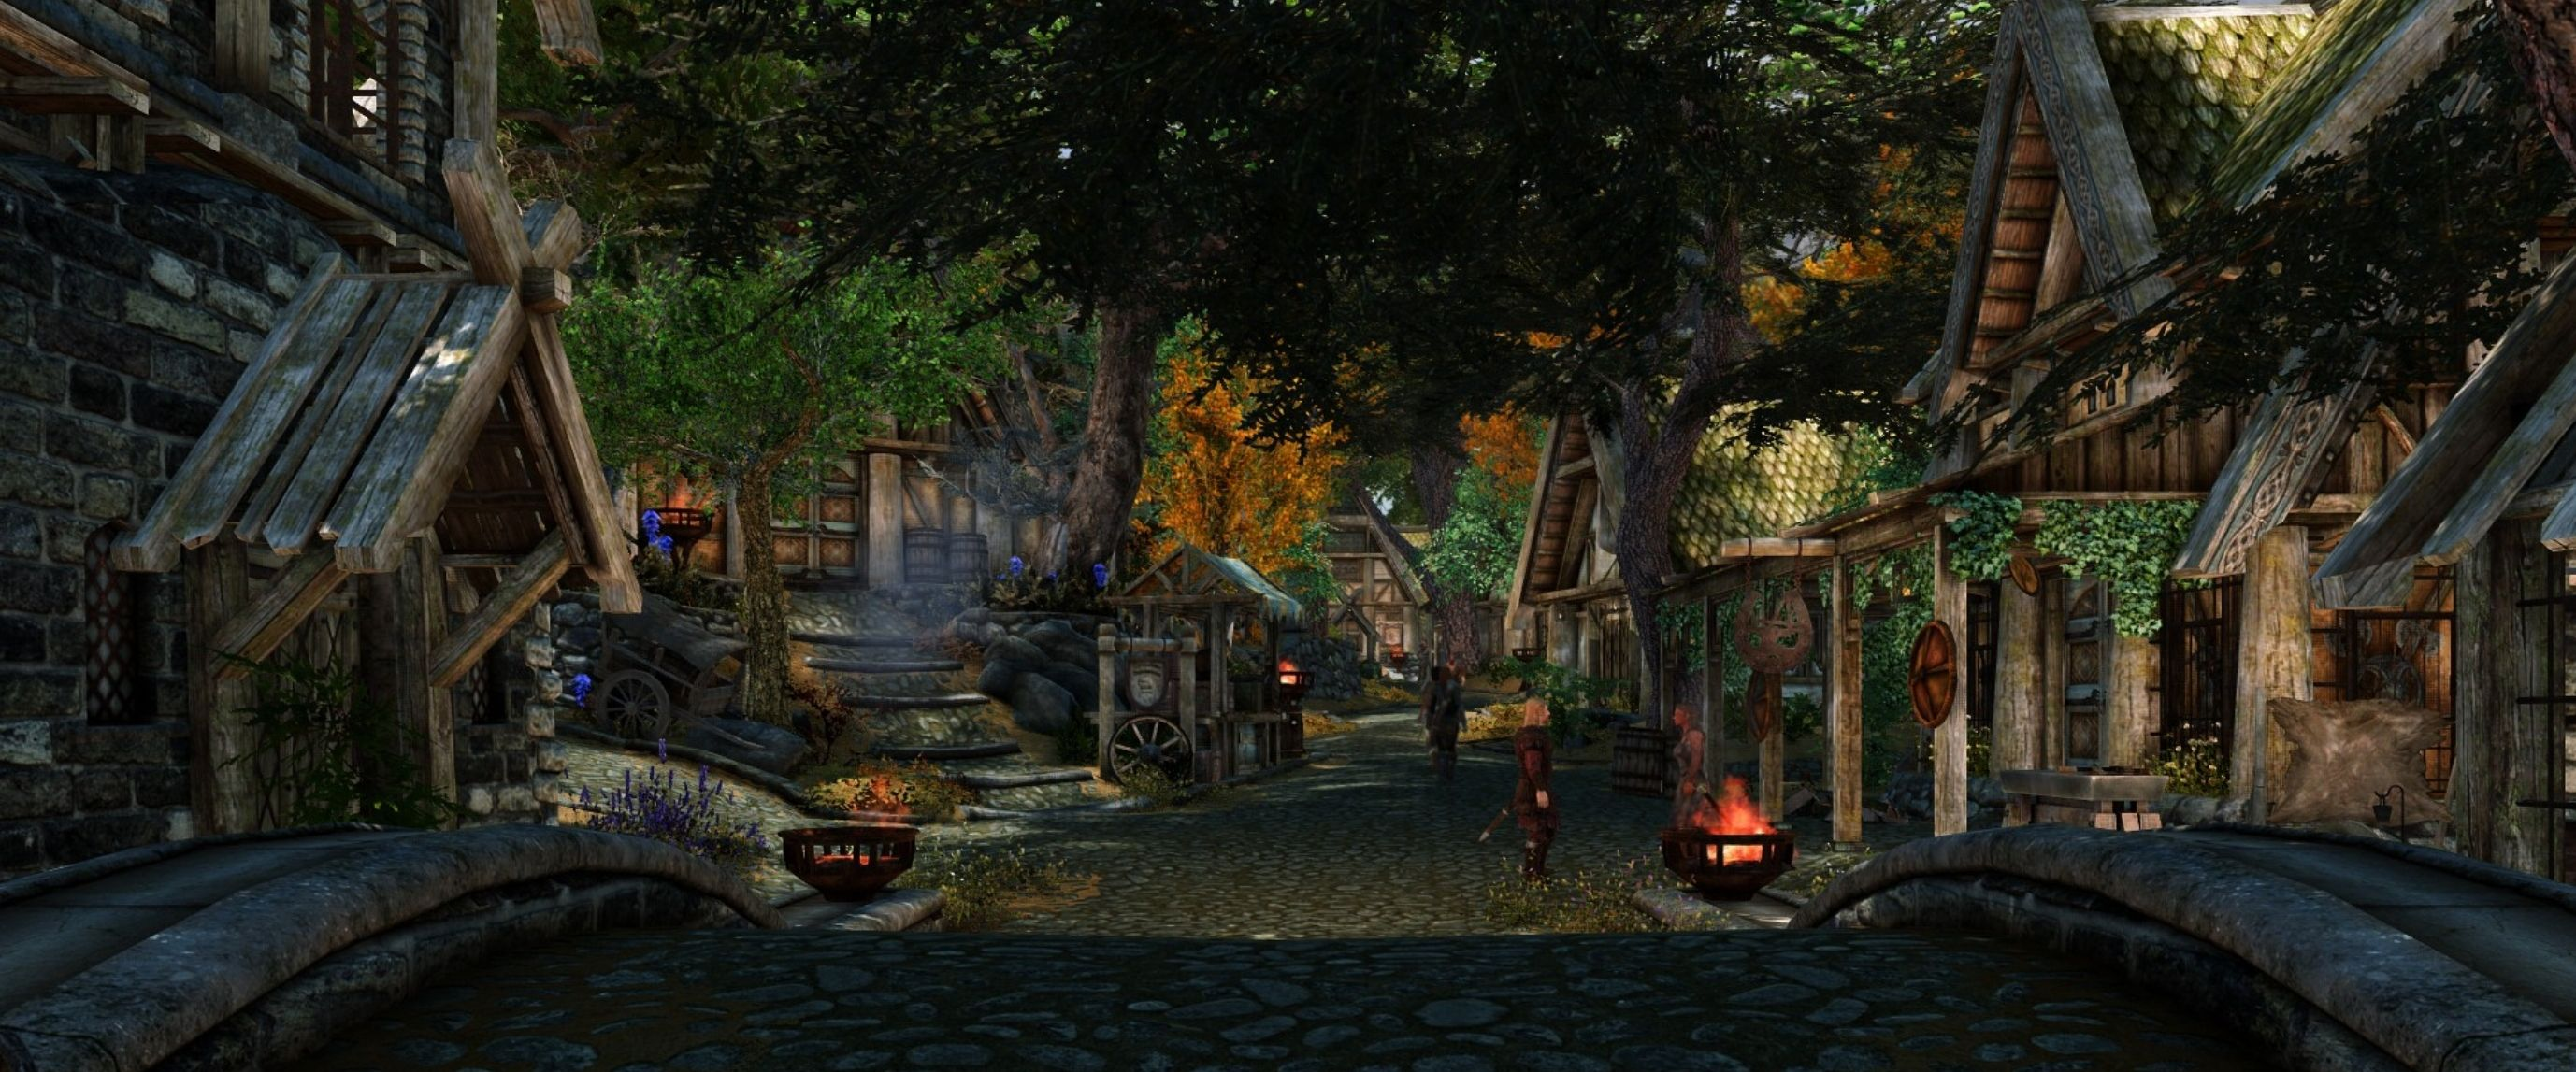 This Is How Whiterun Should Ve Looked When They Released Sse Games Skyrim Elderscrolls Be3 Gaming Videogames C Elder Scrolls Skyrim Skyrim Elder Scrolls